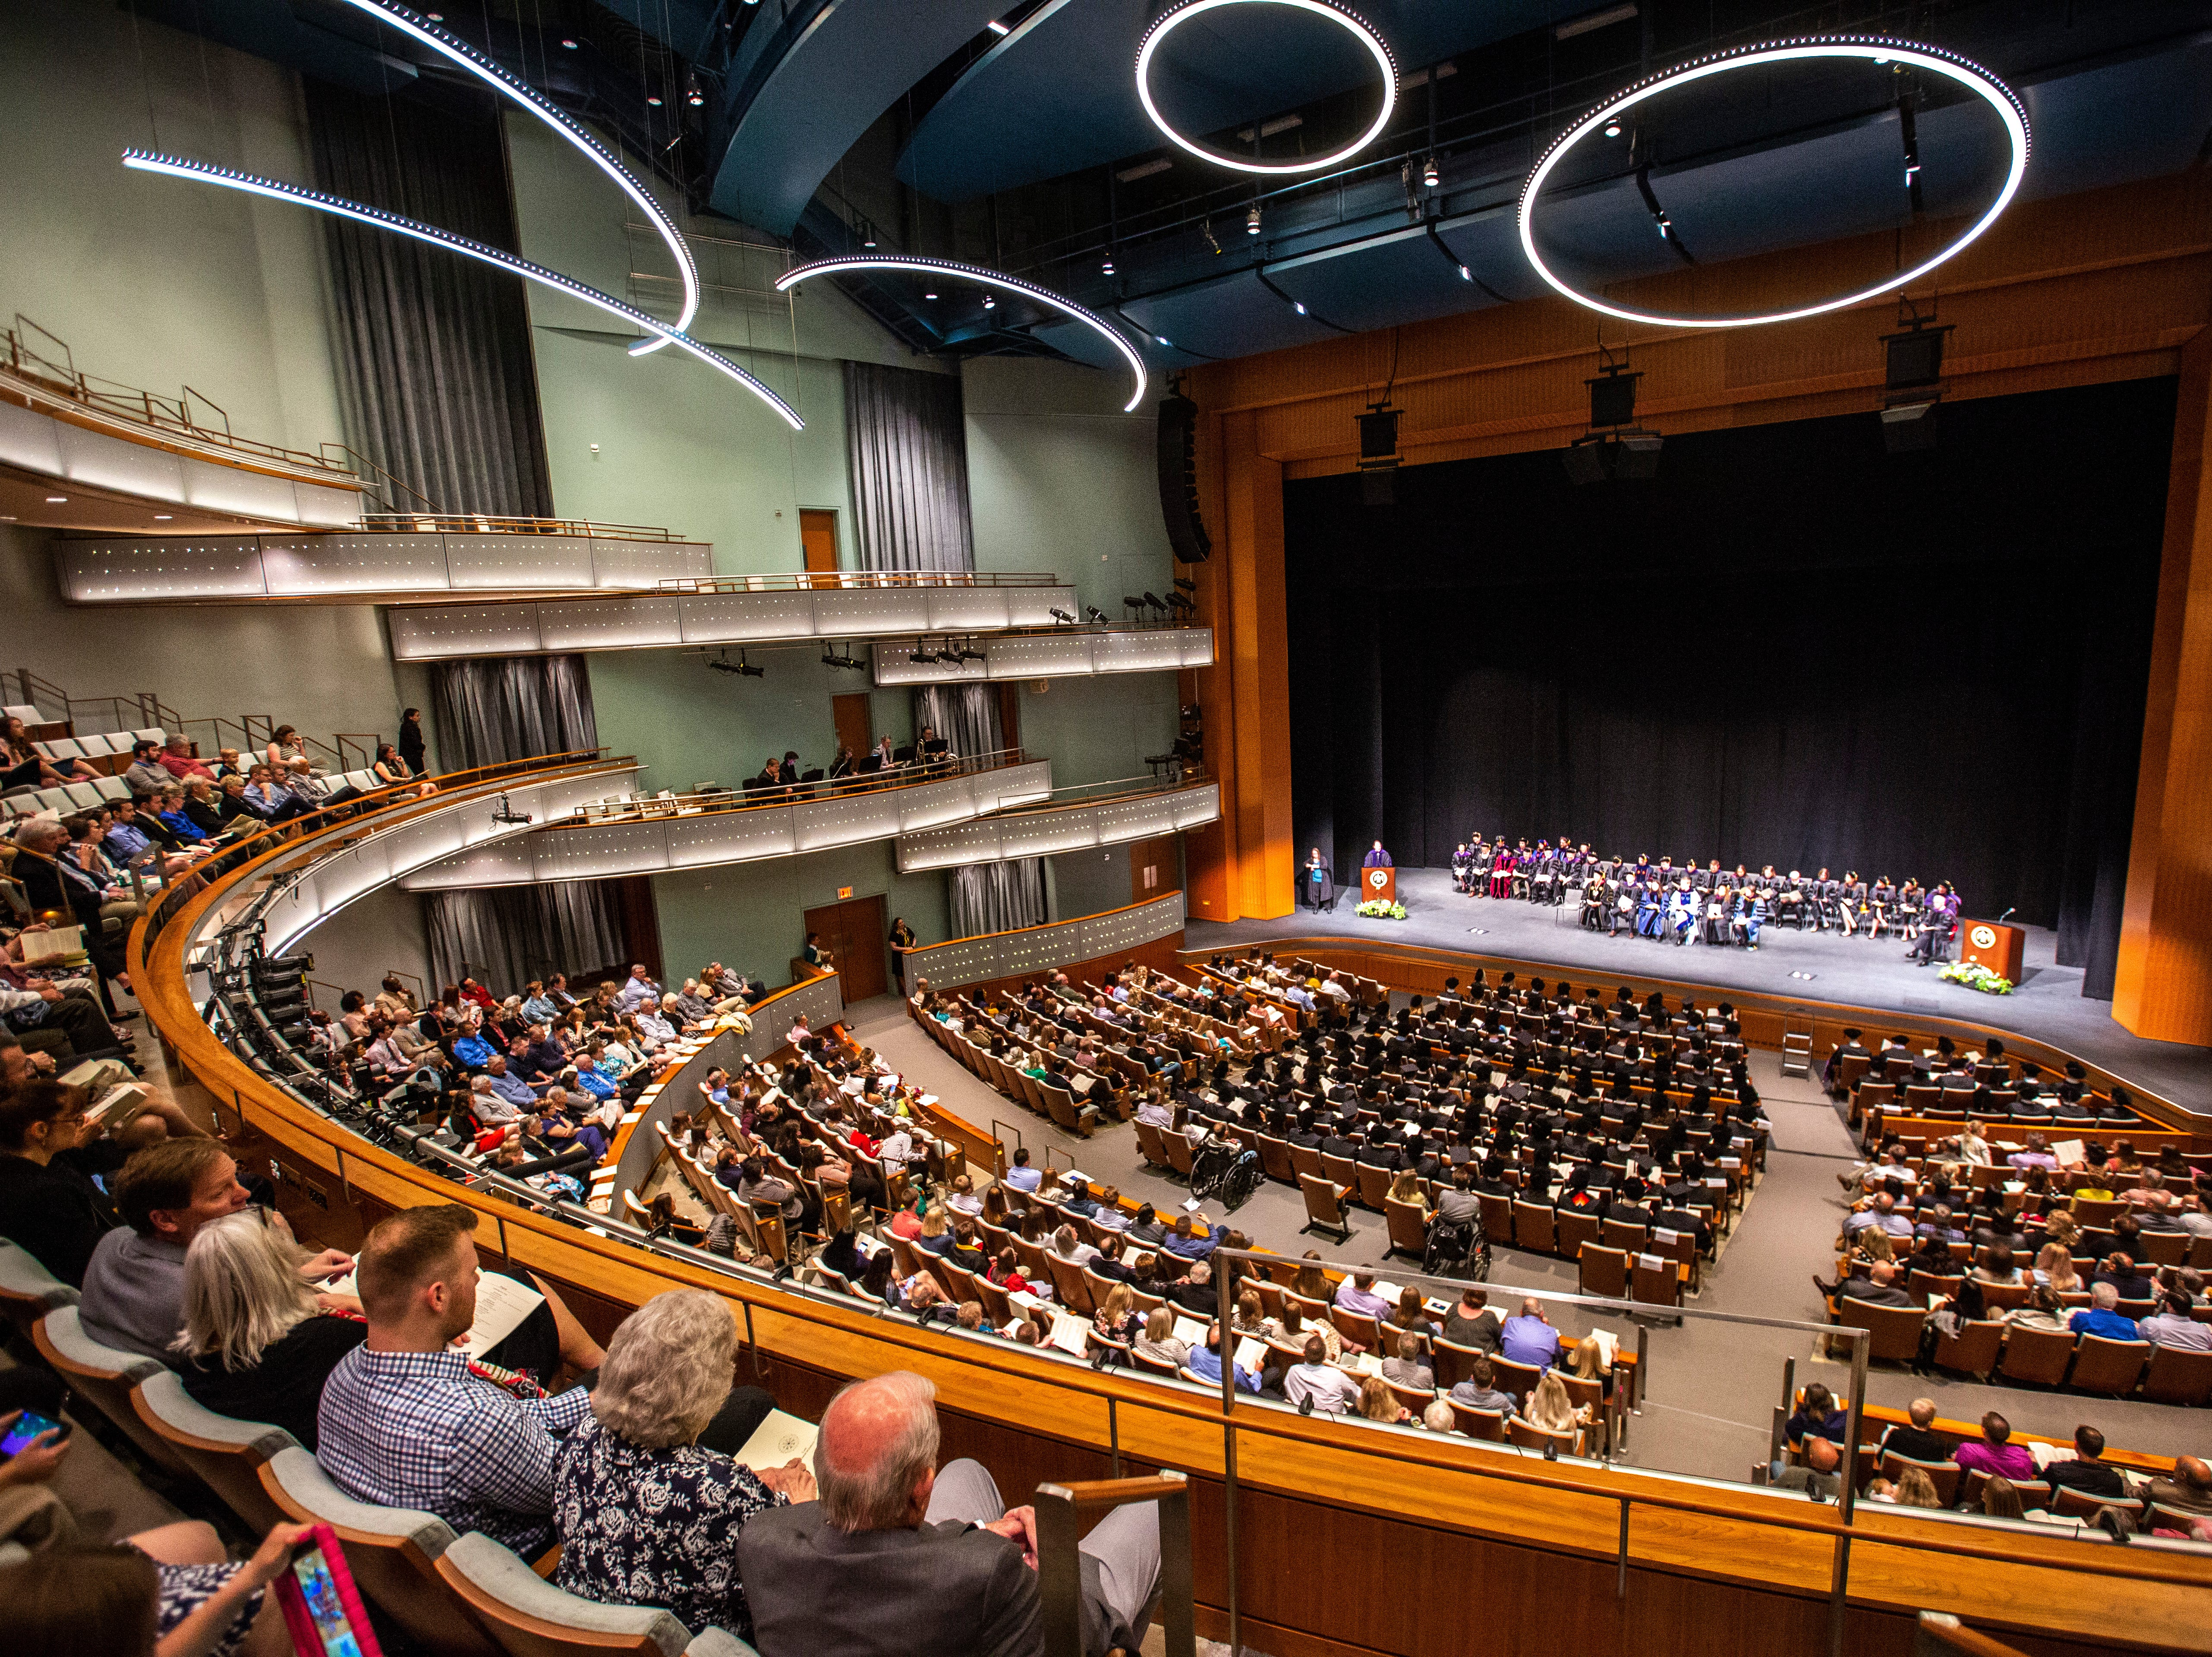 Friends and family gather during the College of Law commencement ceremony, Friday, May 10, 2019, at Hancher Auditorium on the University of Iowa campus in Iowa City, Iowa.